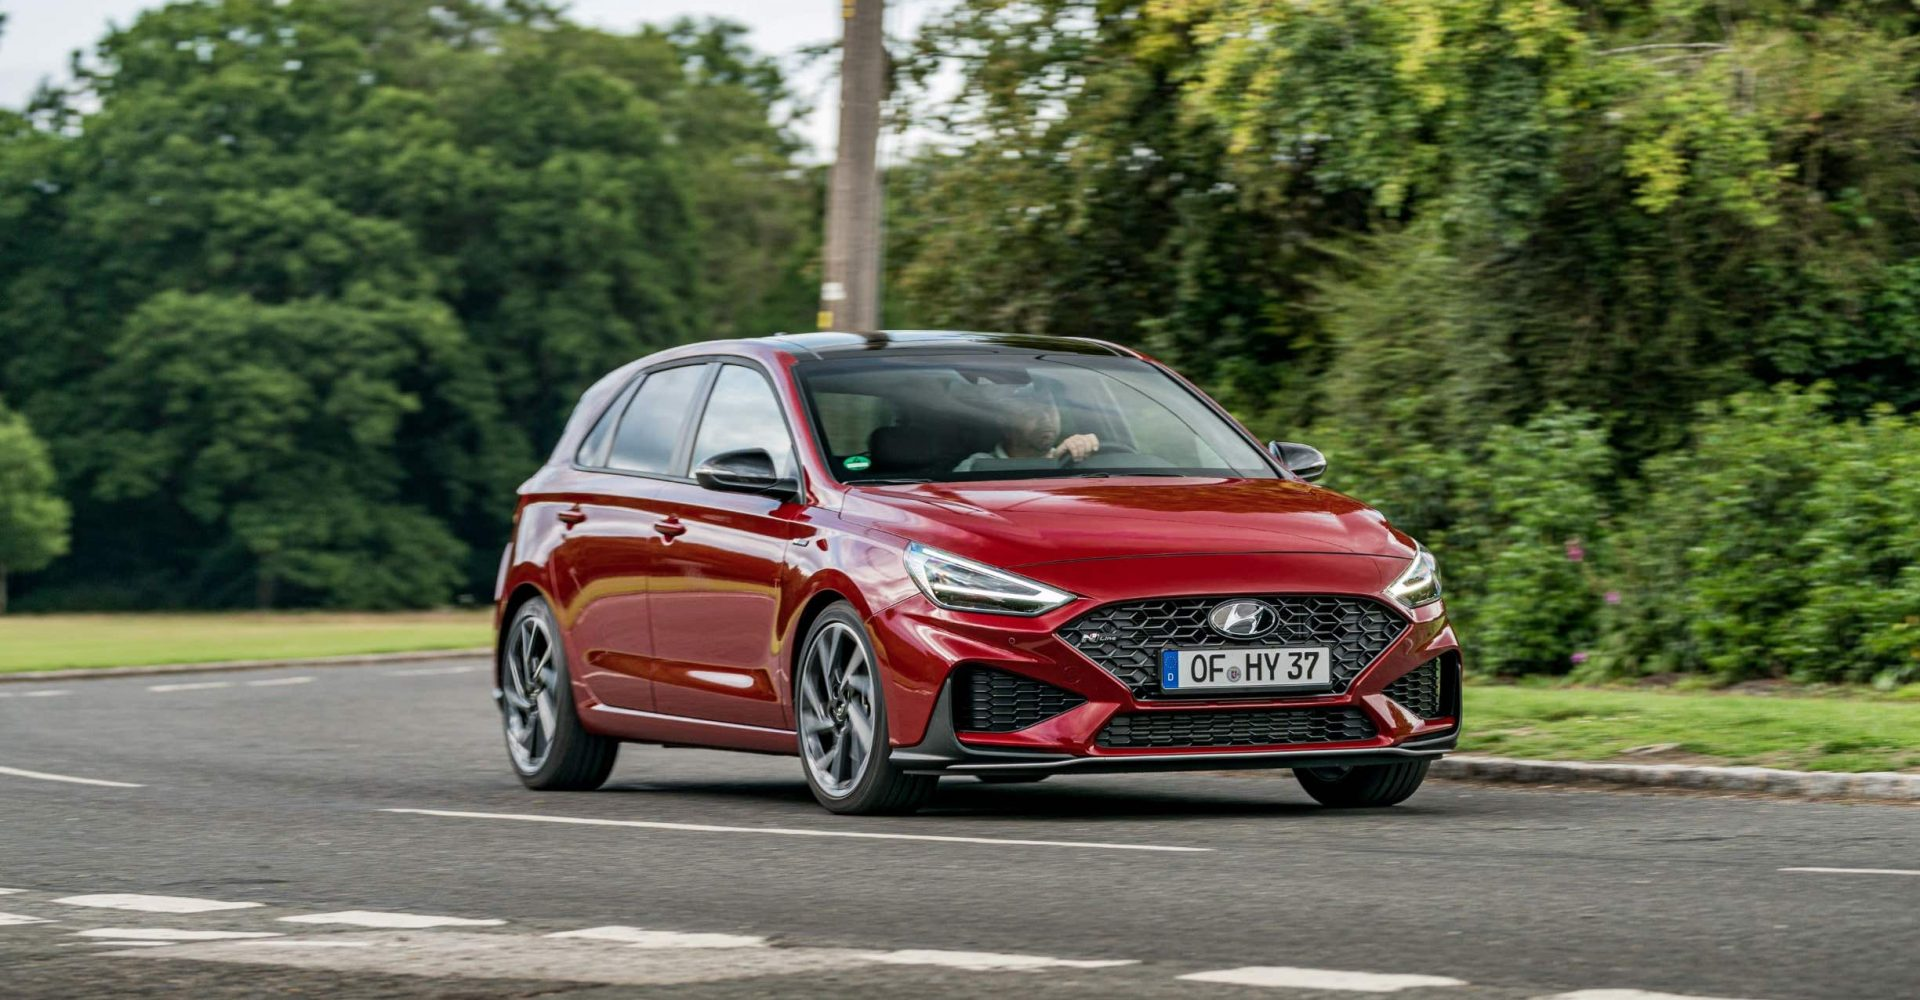 New Hyundai i30 priced from £20,695